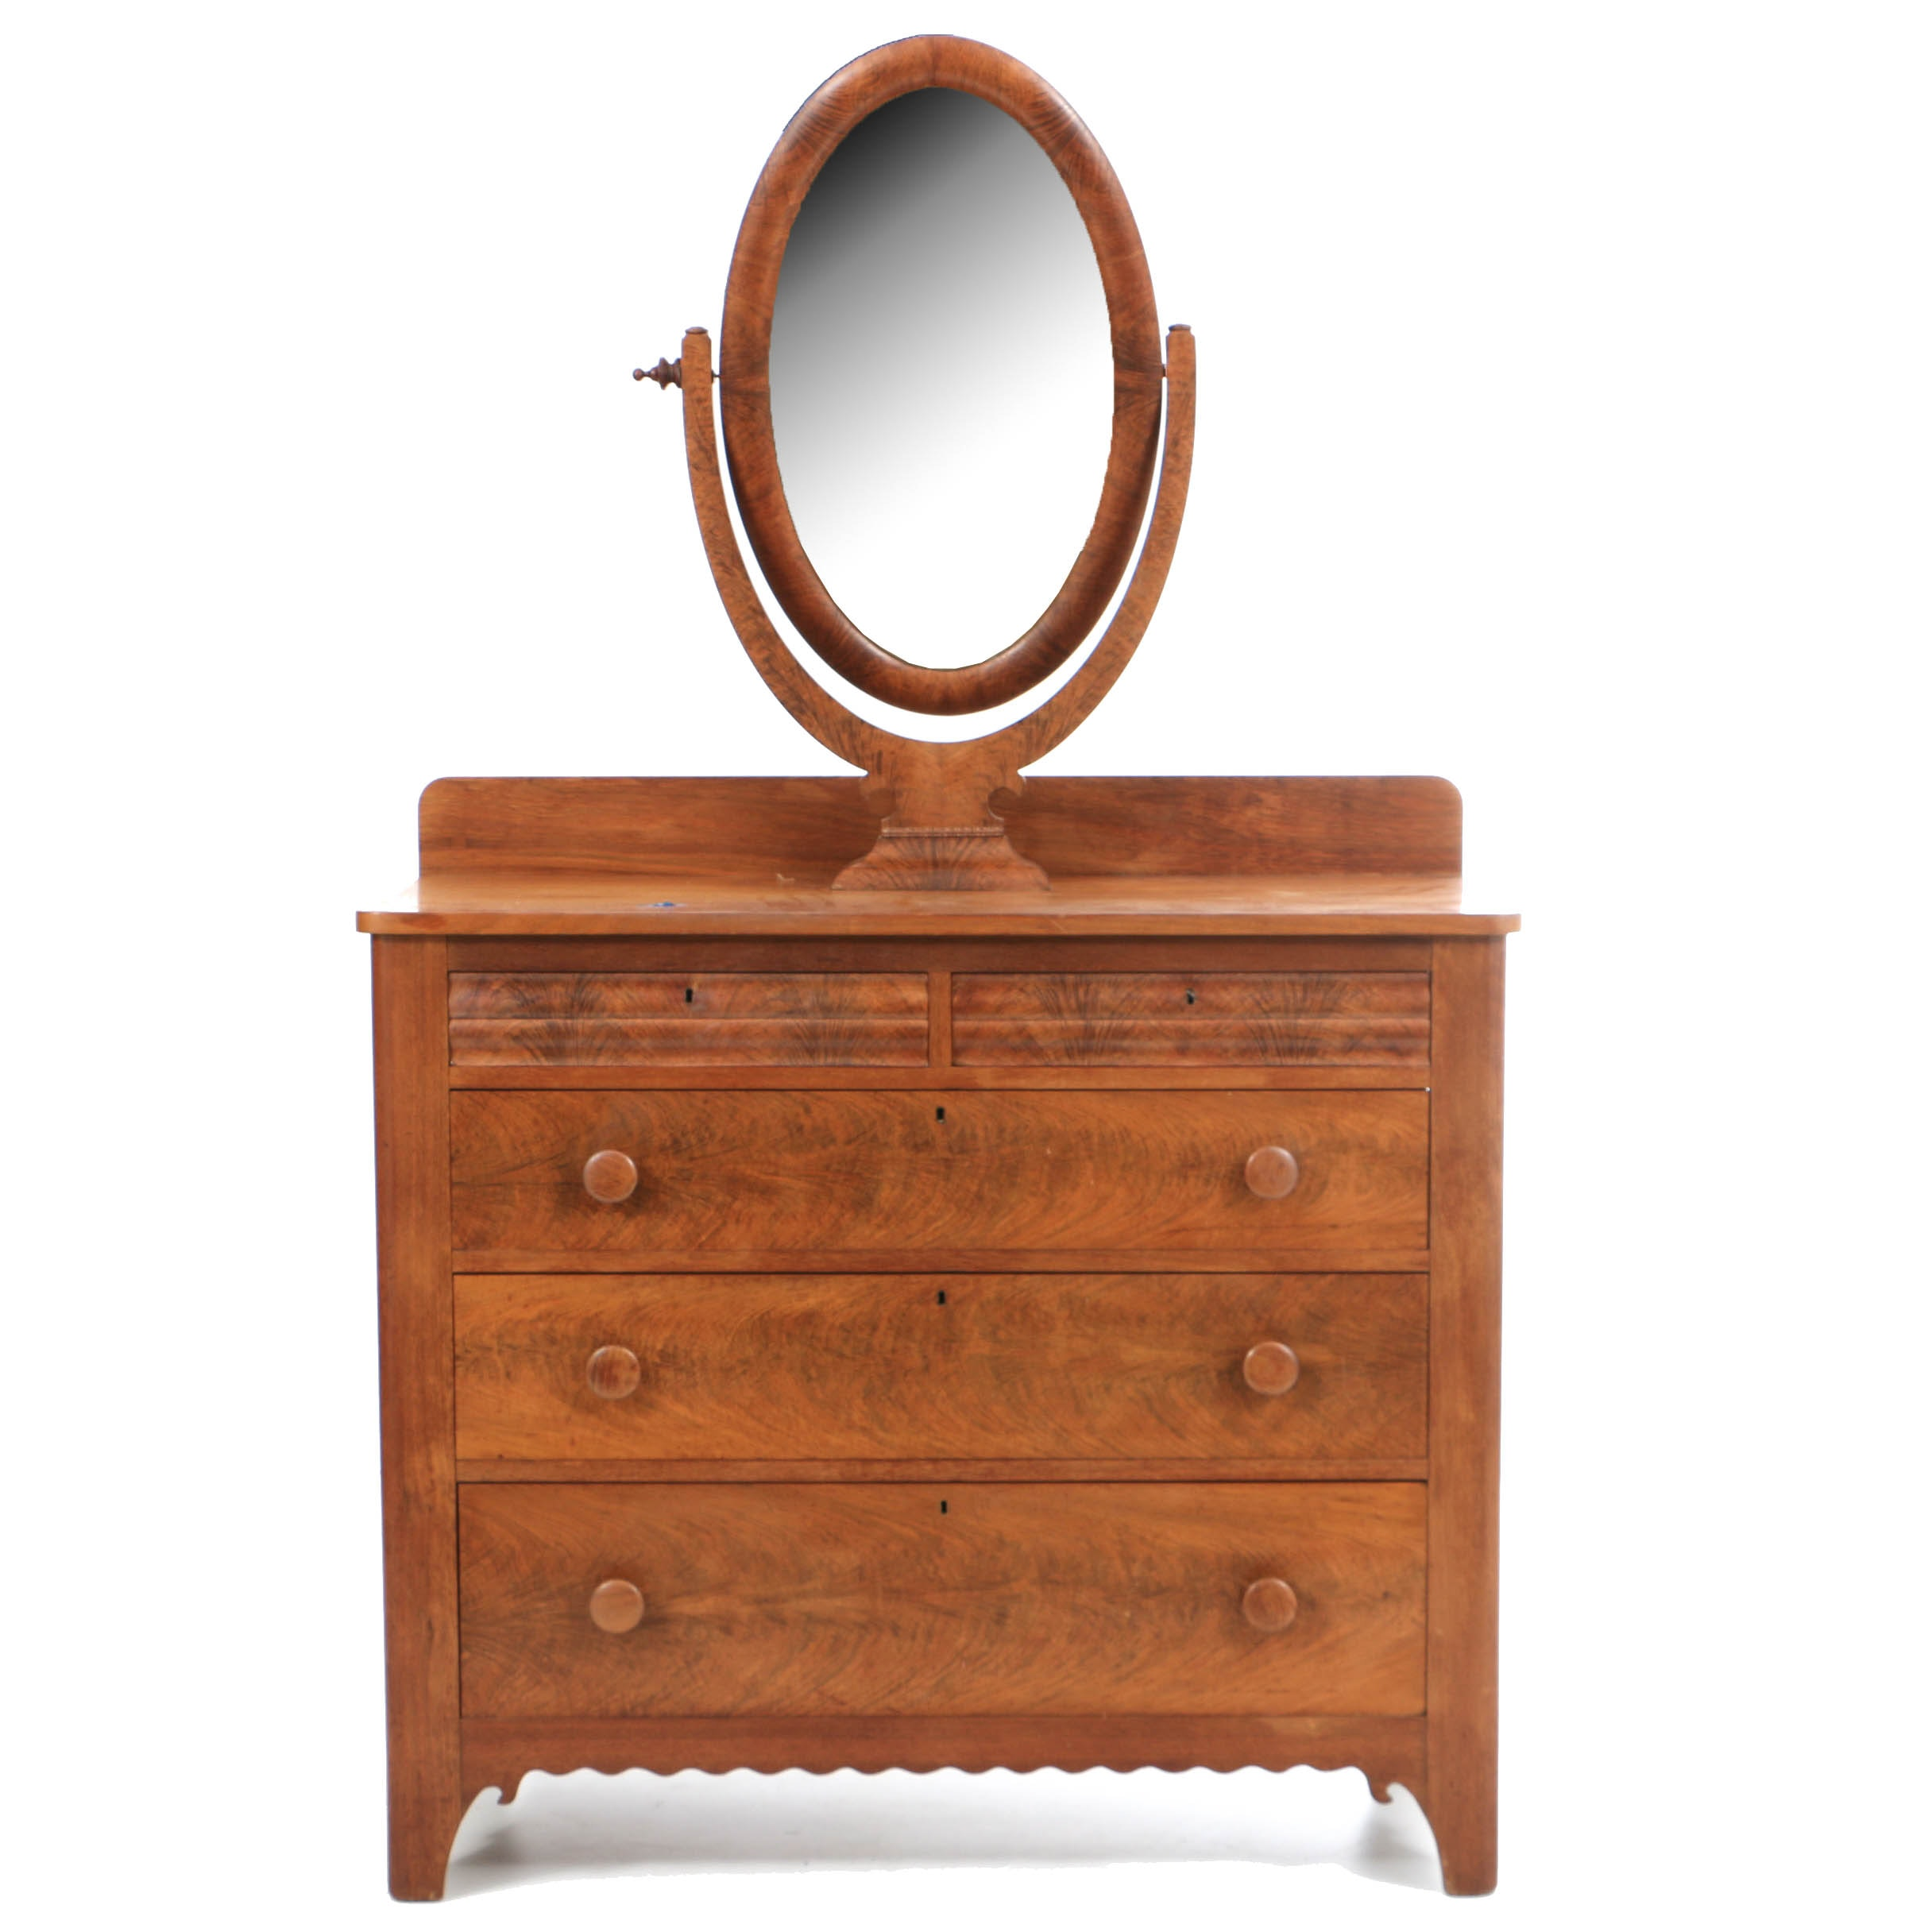 Antique Transitional Empire-to-Victorian Mahogany Dresser with Mirror